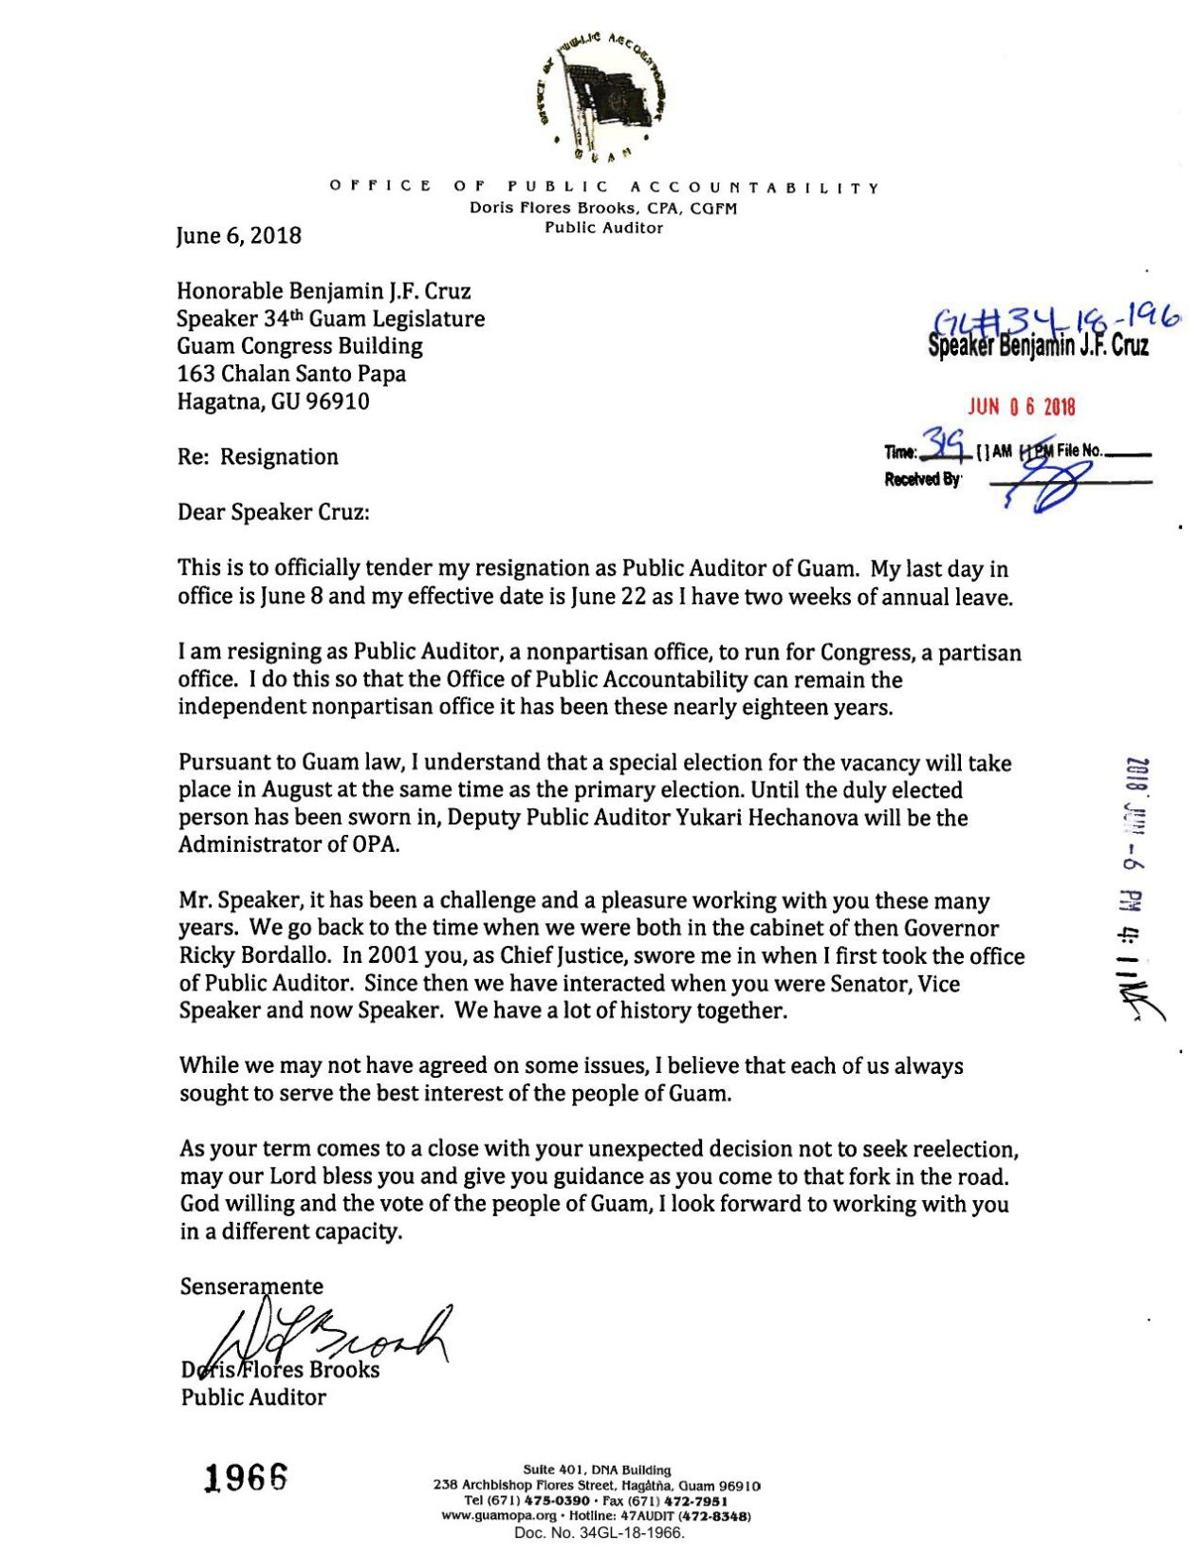 Public auditor doris flores brooks resignation letter to speaker download pdf public auditor doris flores brooks resignation letter to speaker benjamin cruz spiritdancerdesigns Choice Image